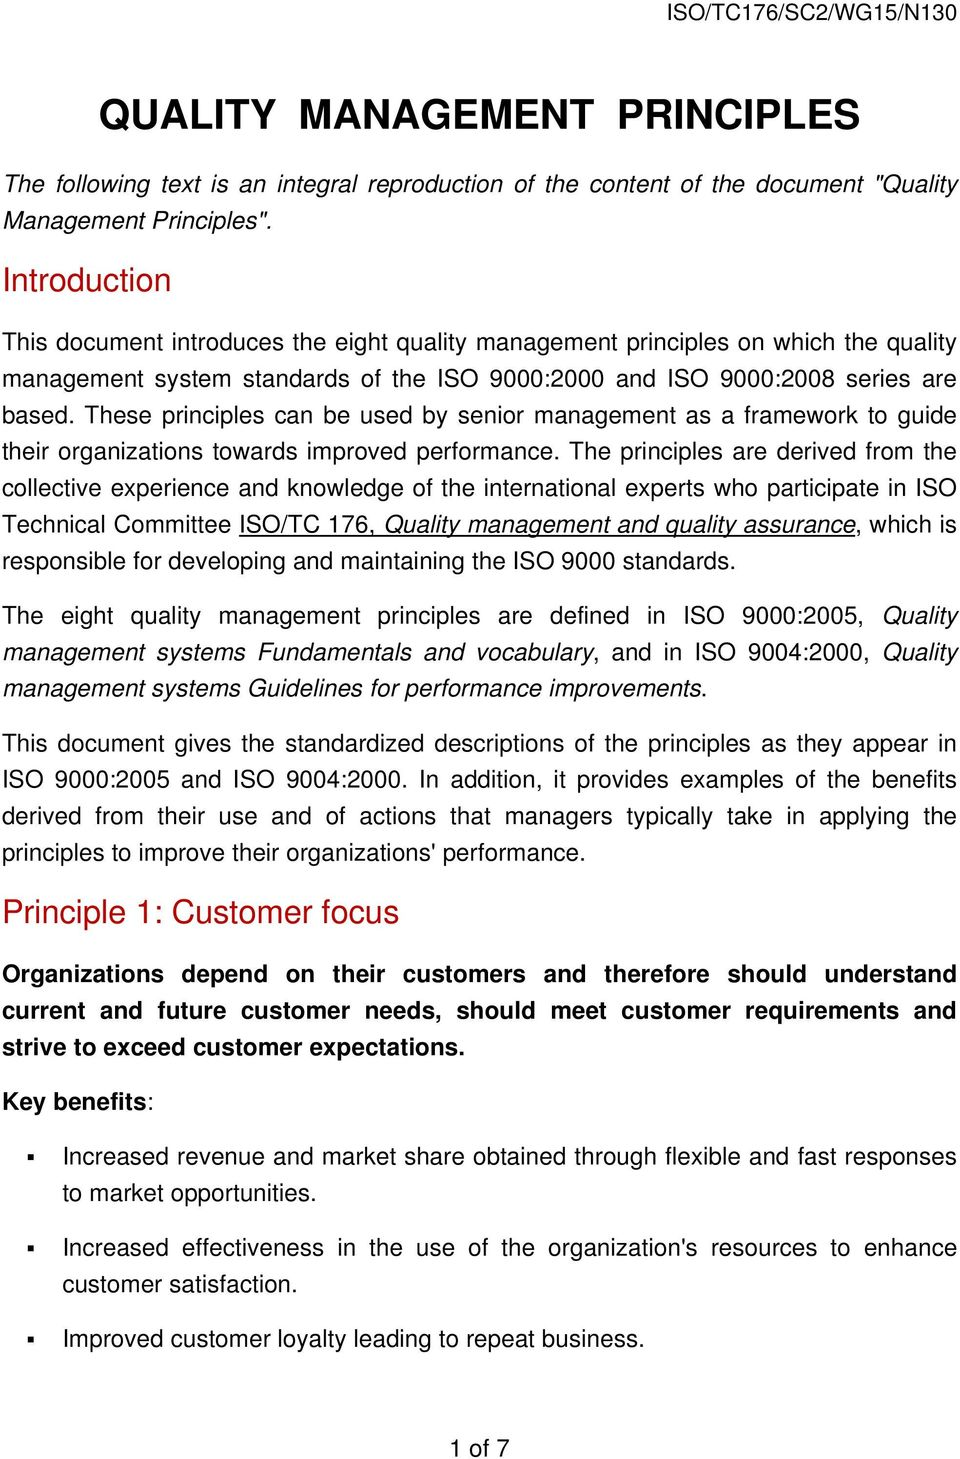 These principles can be used by senior management as a framework to guide their organizations towards improved performance.